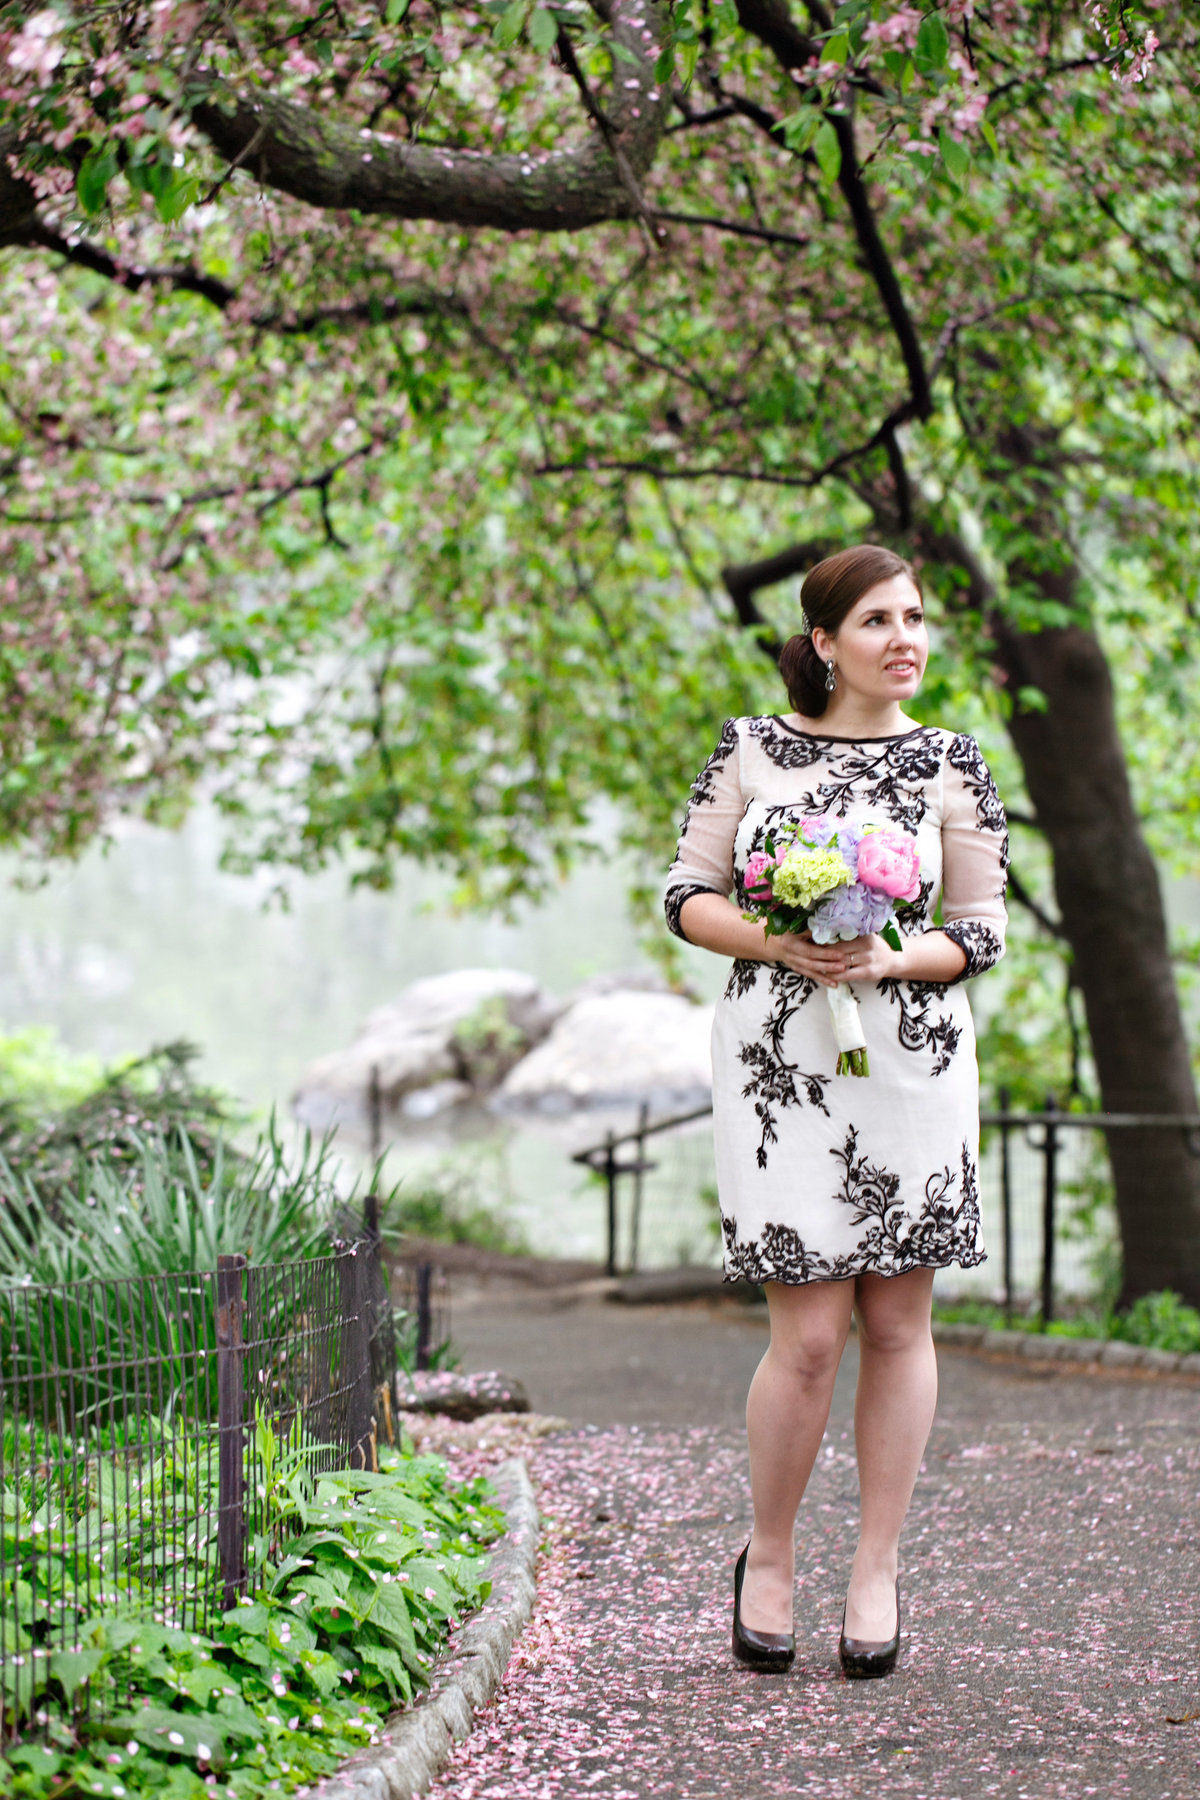 AmyAnaiz__Intimate_Elopement_Central_Park_Mantattan_New_York023